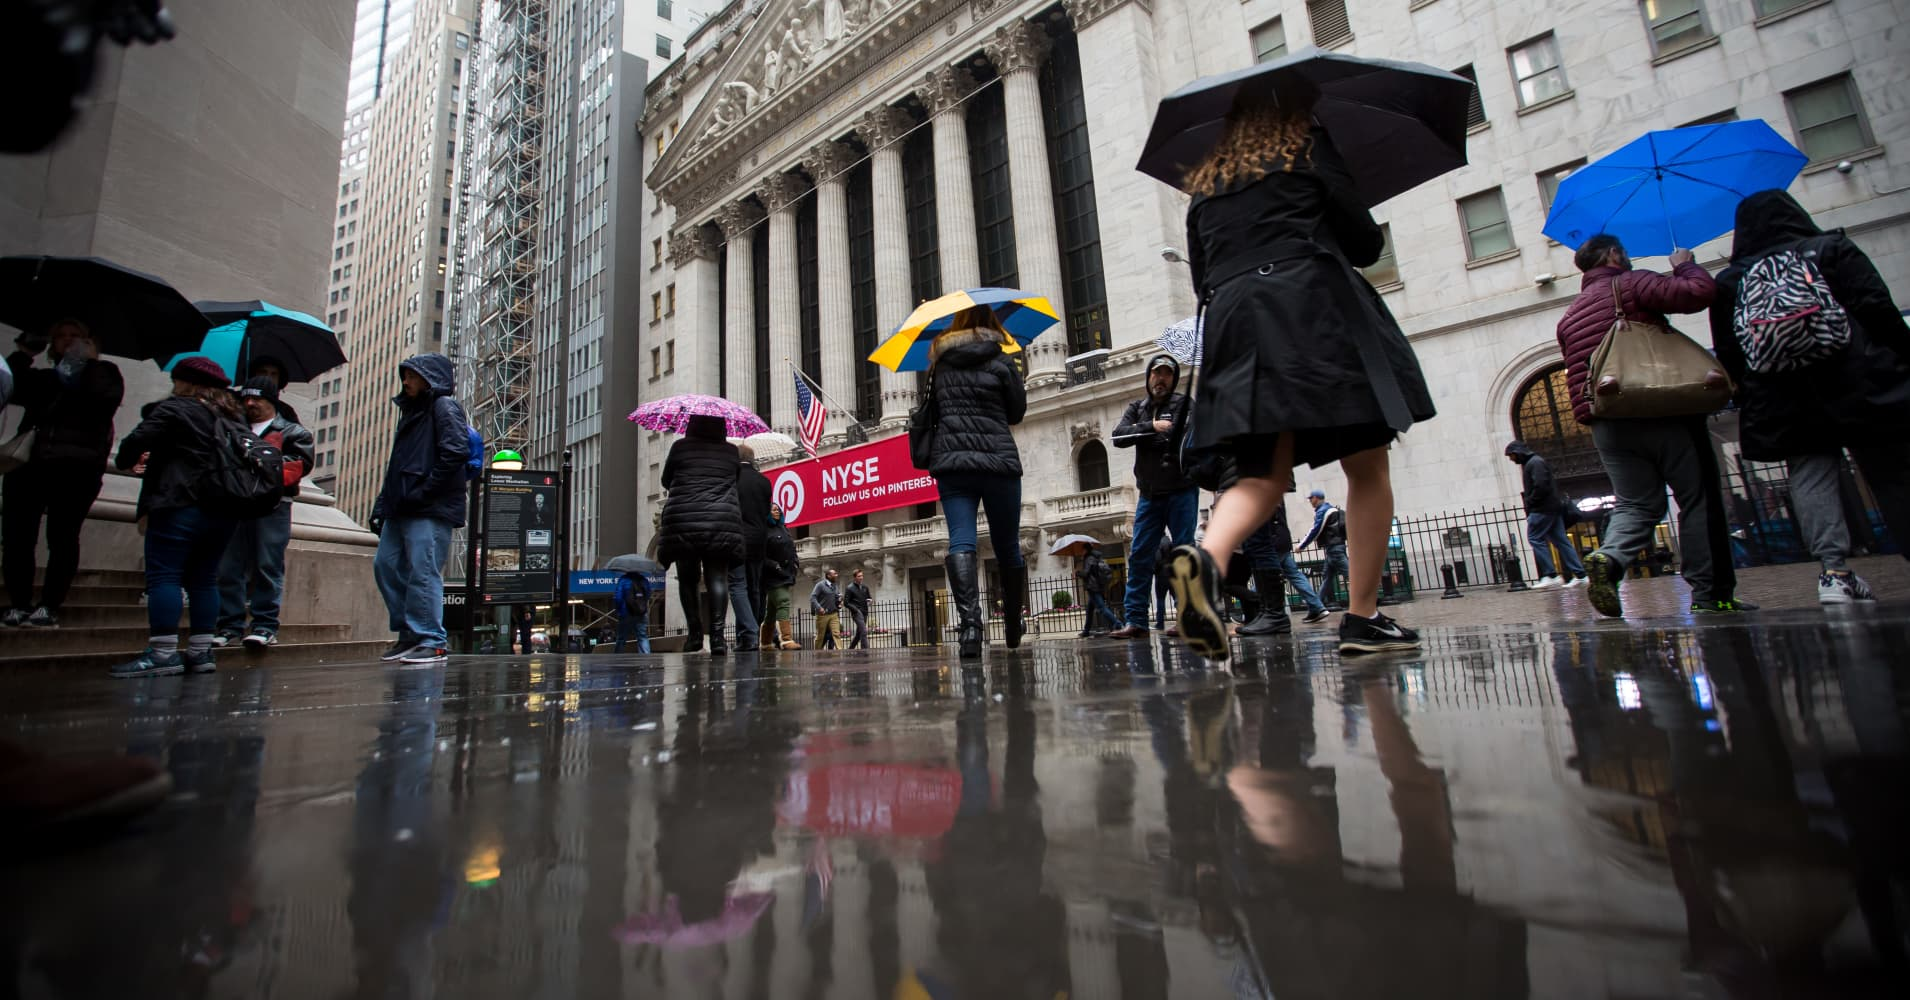 Dow set to fall | Shutdown enters 27th day